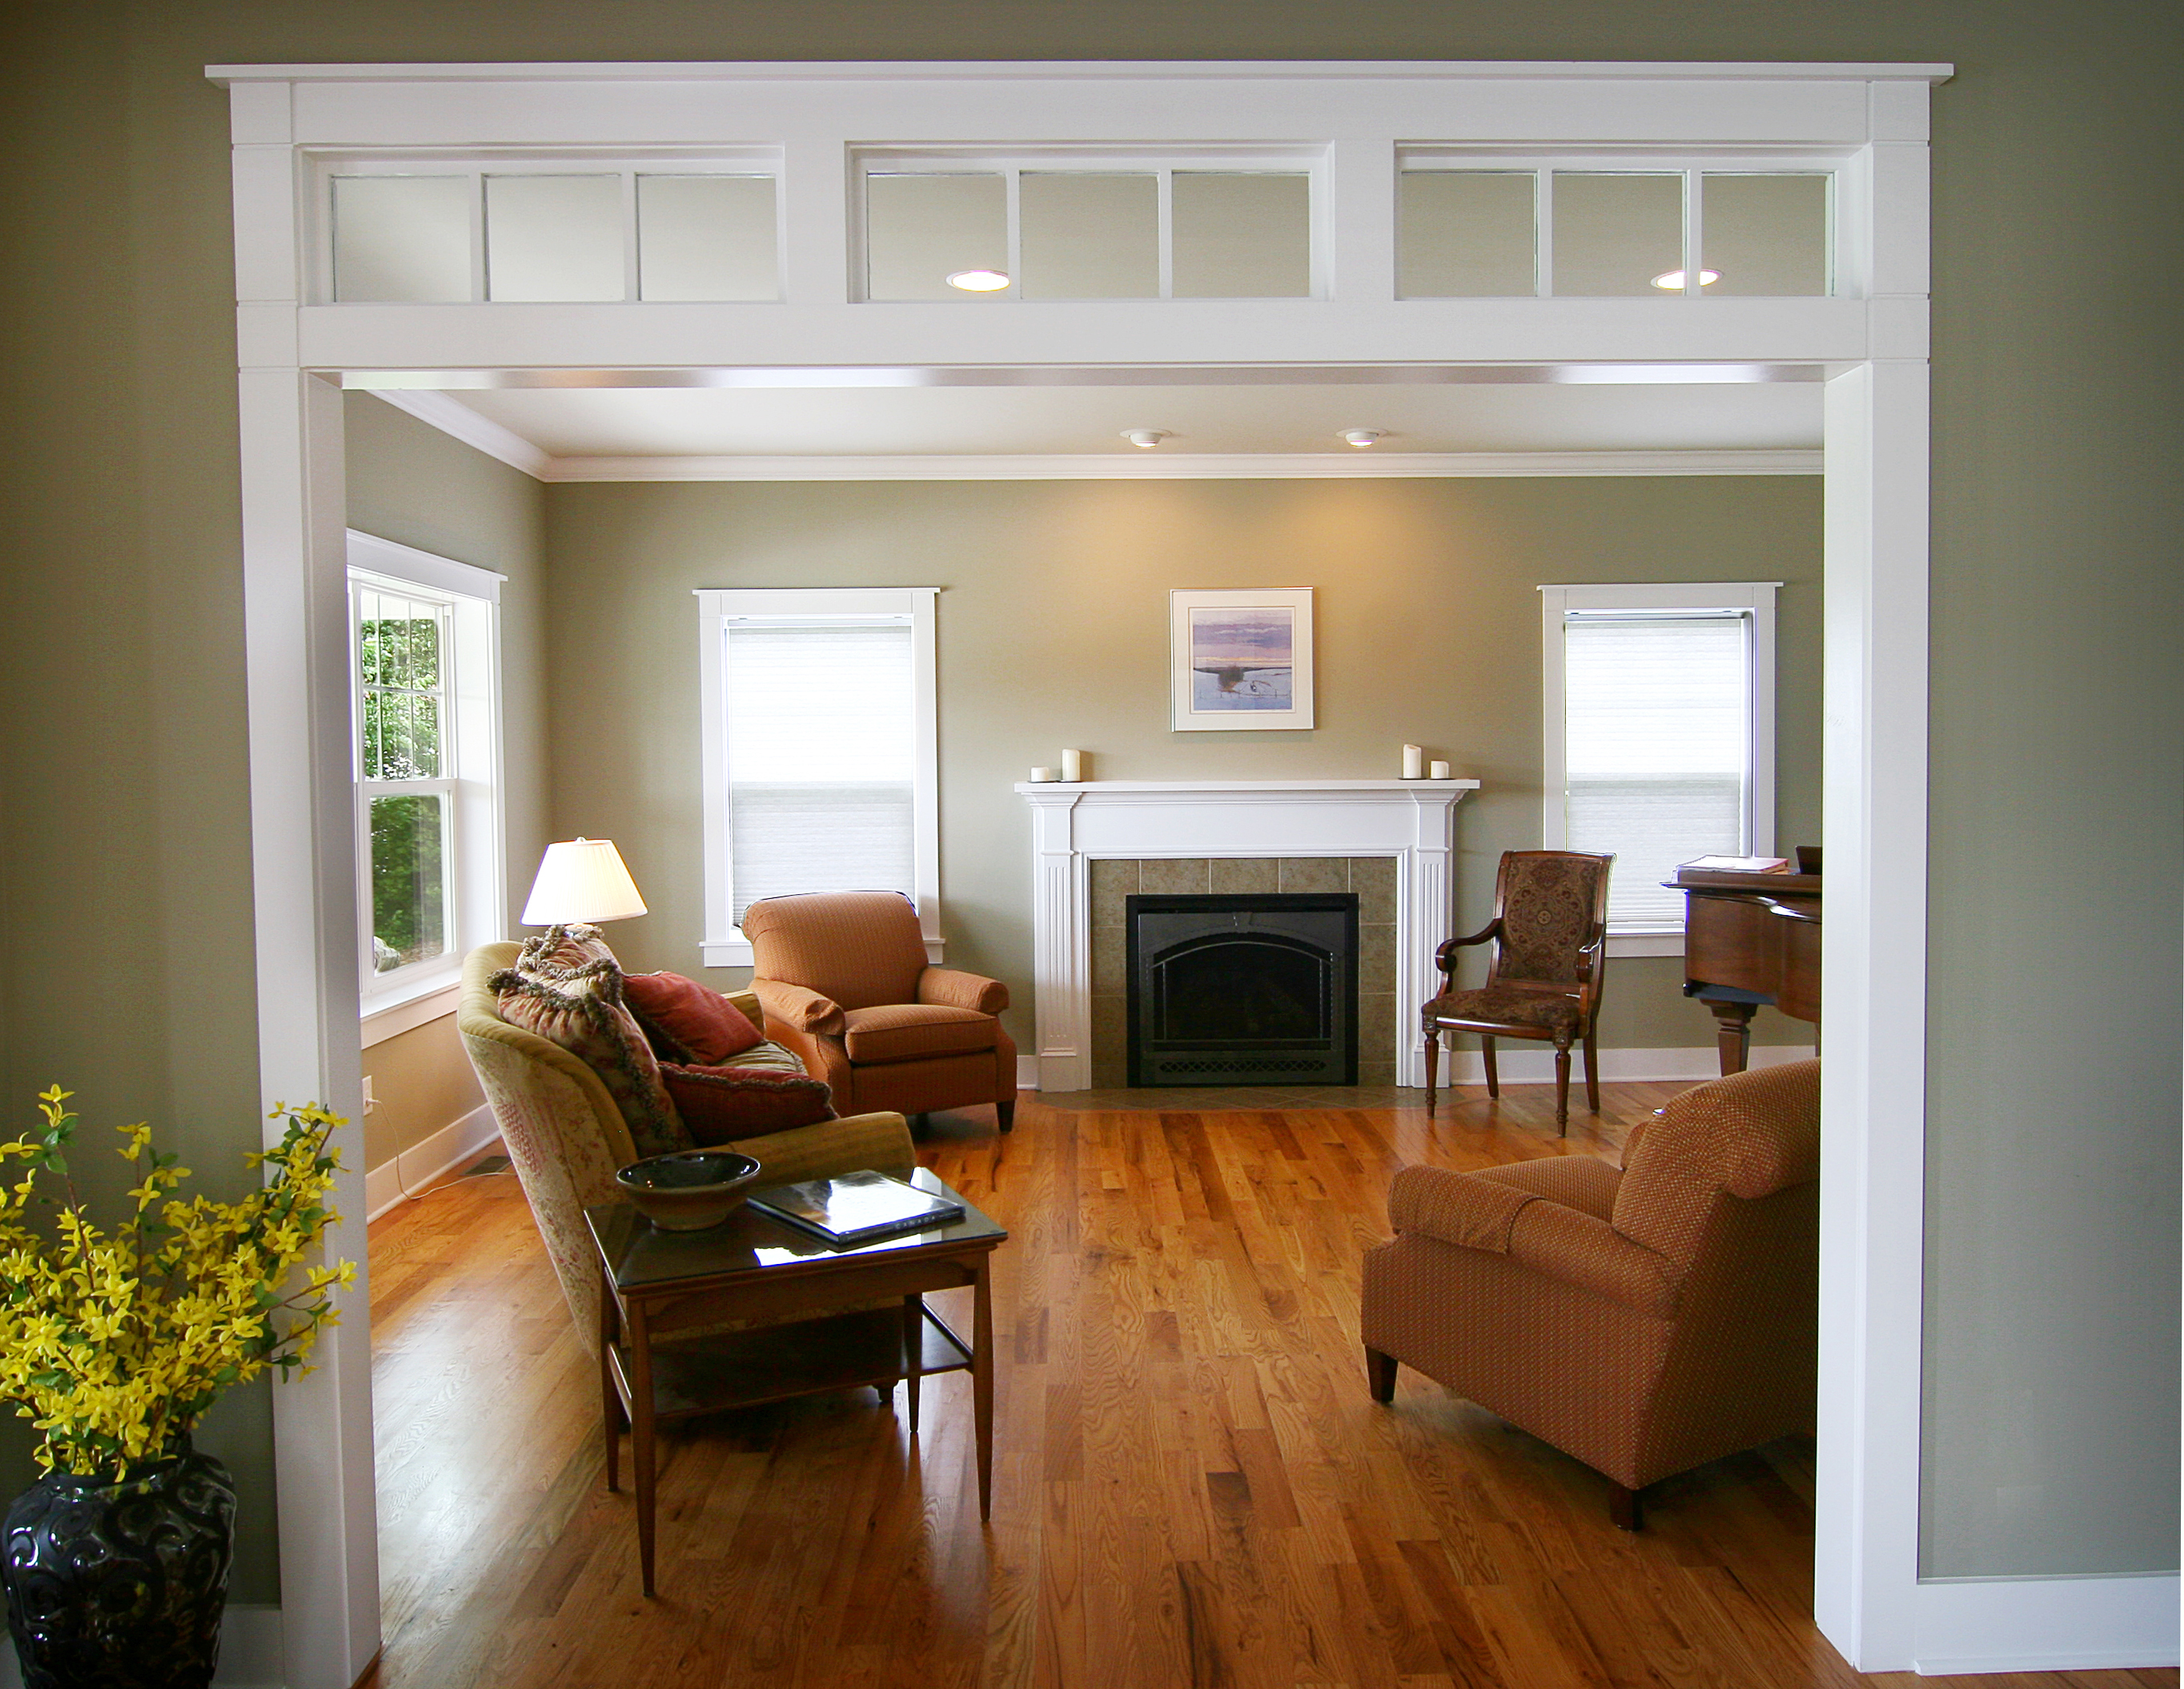 Room addition design construction company north va dc for Addition room design